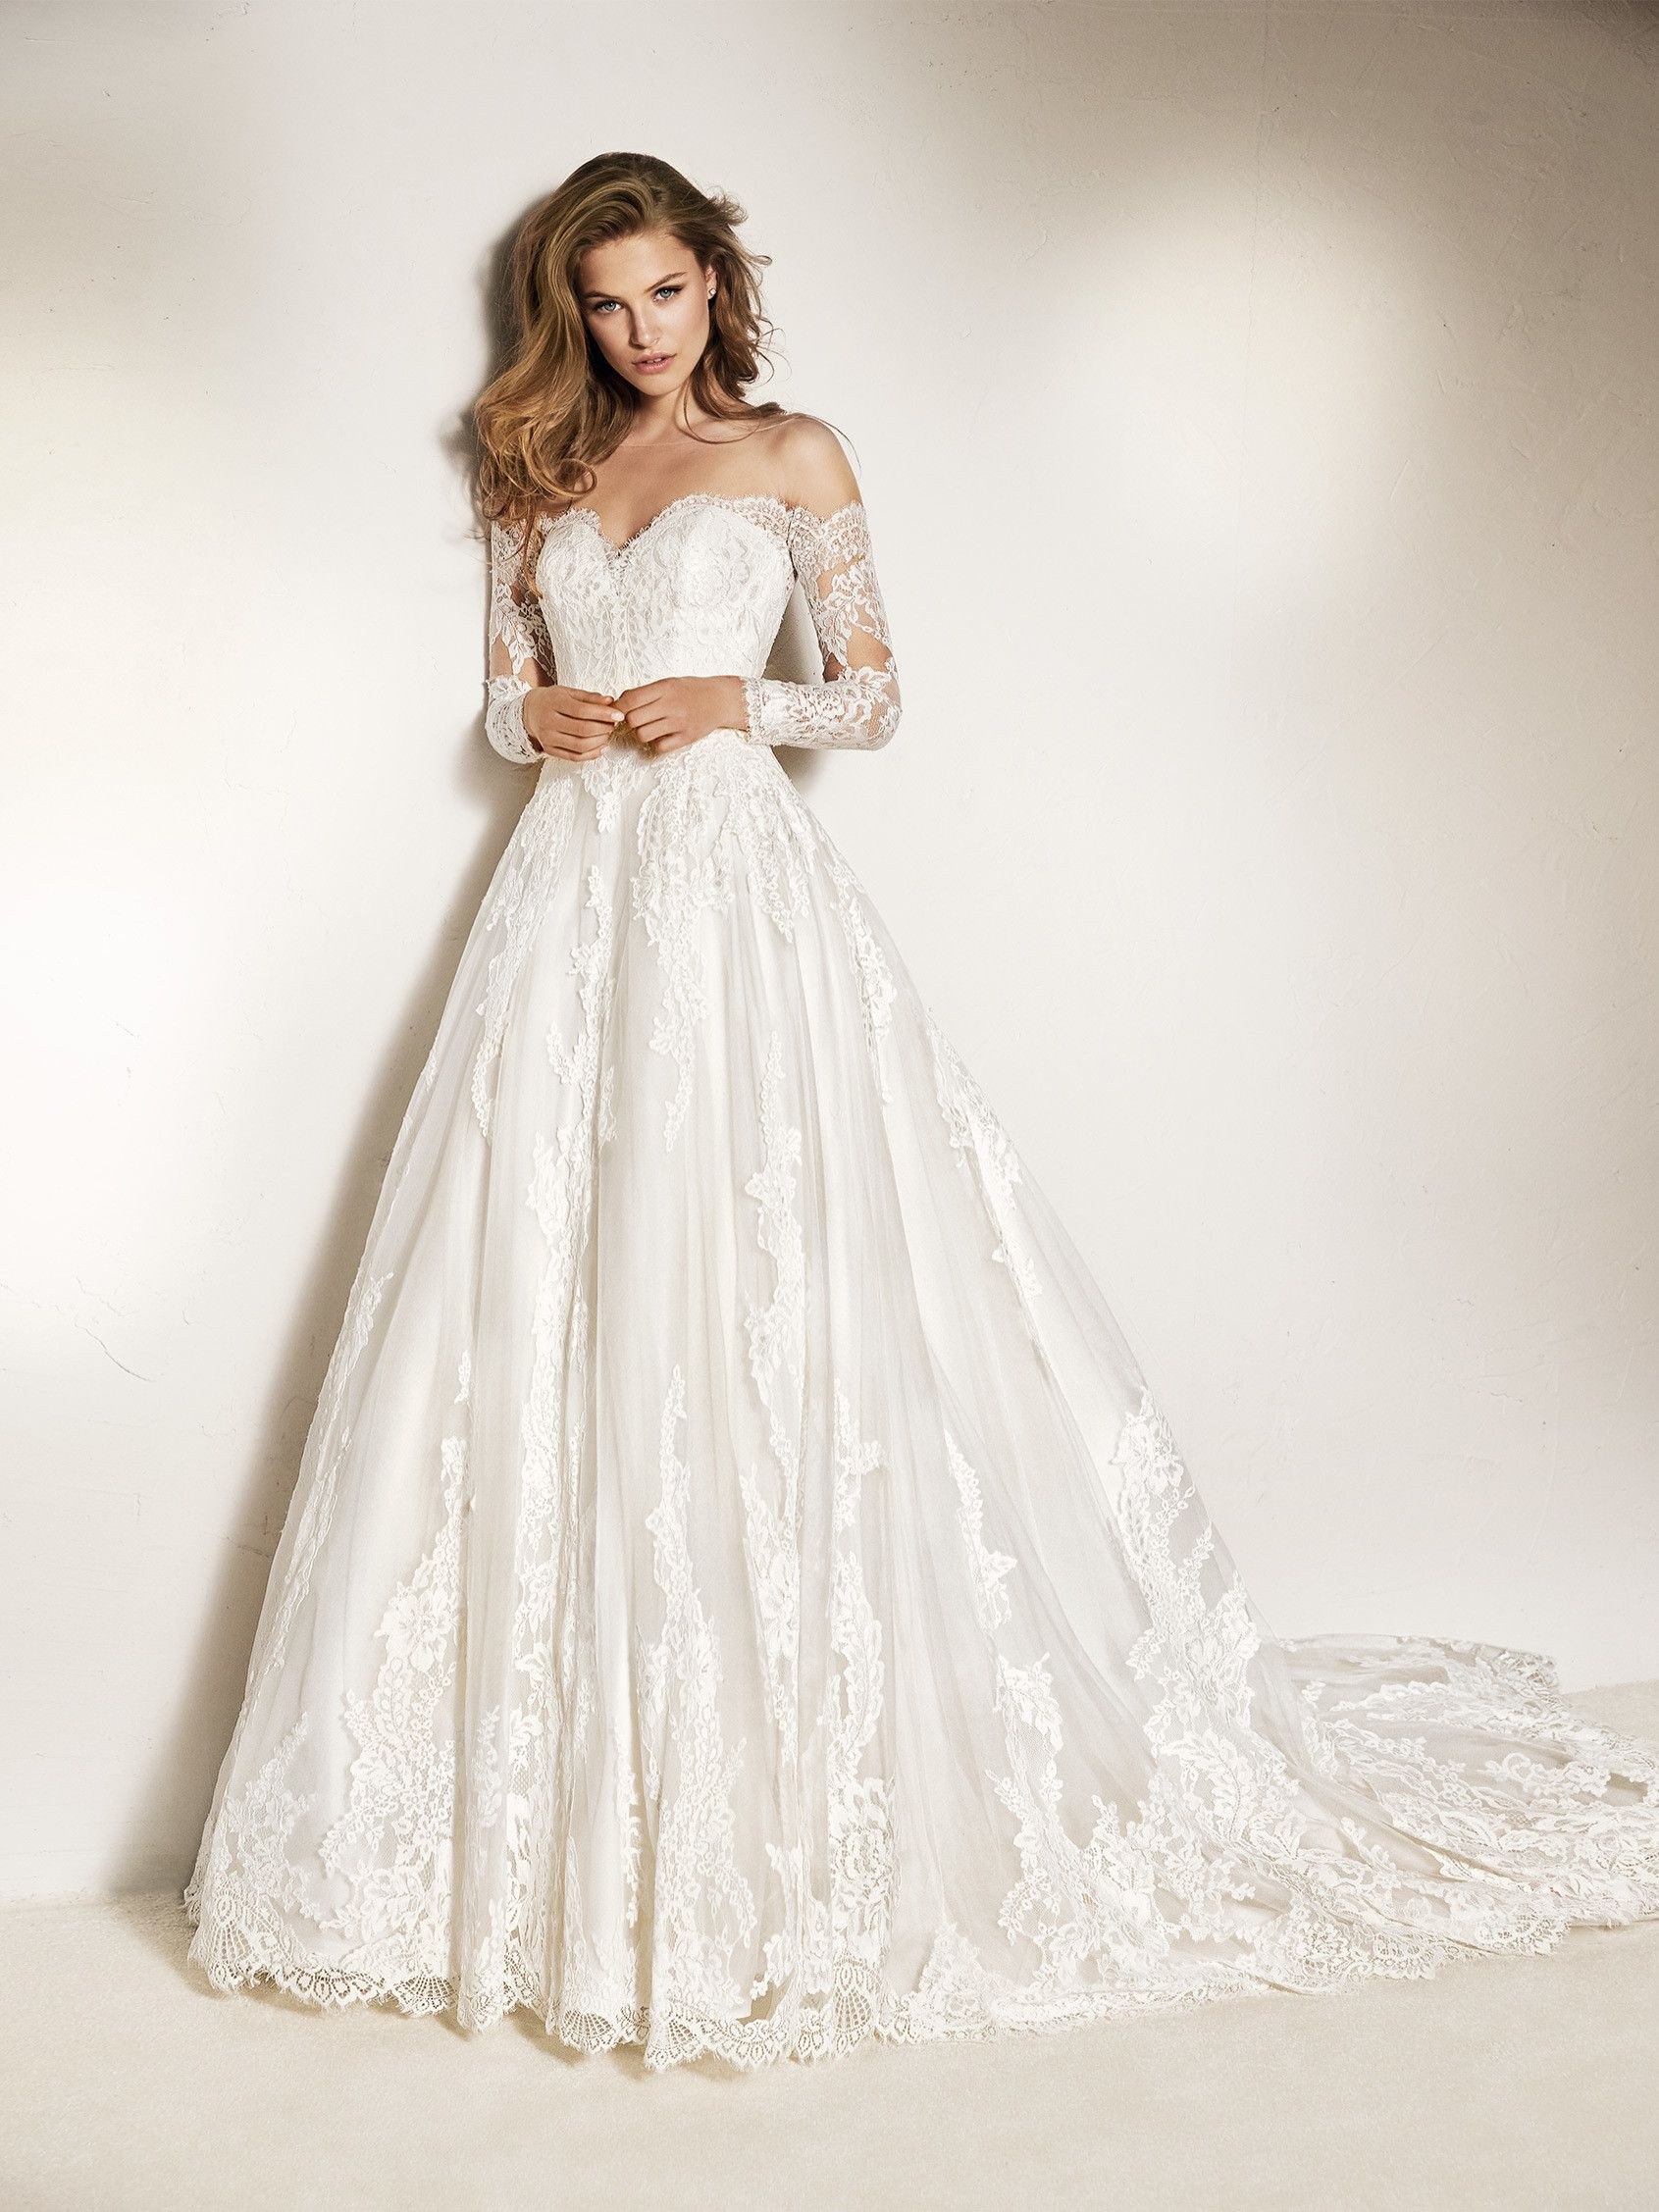 Robe mariee manche tulle